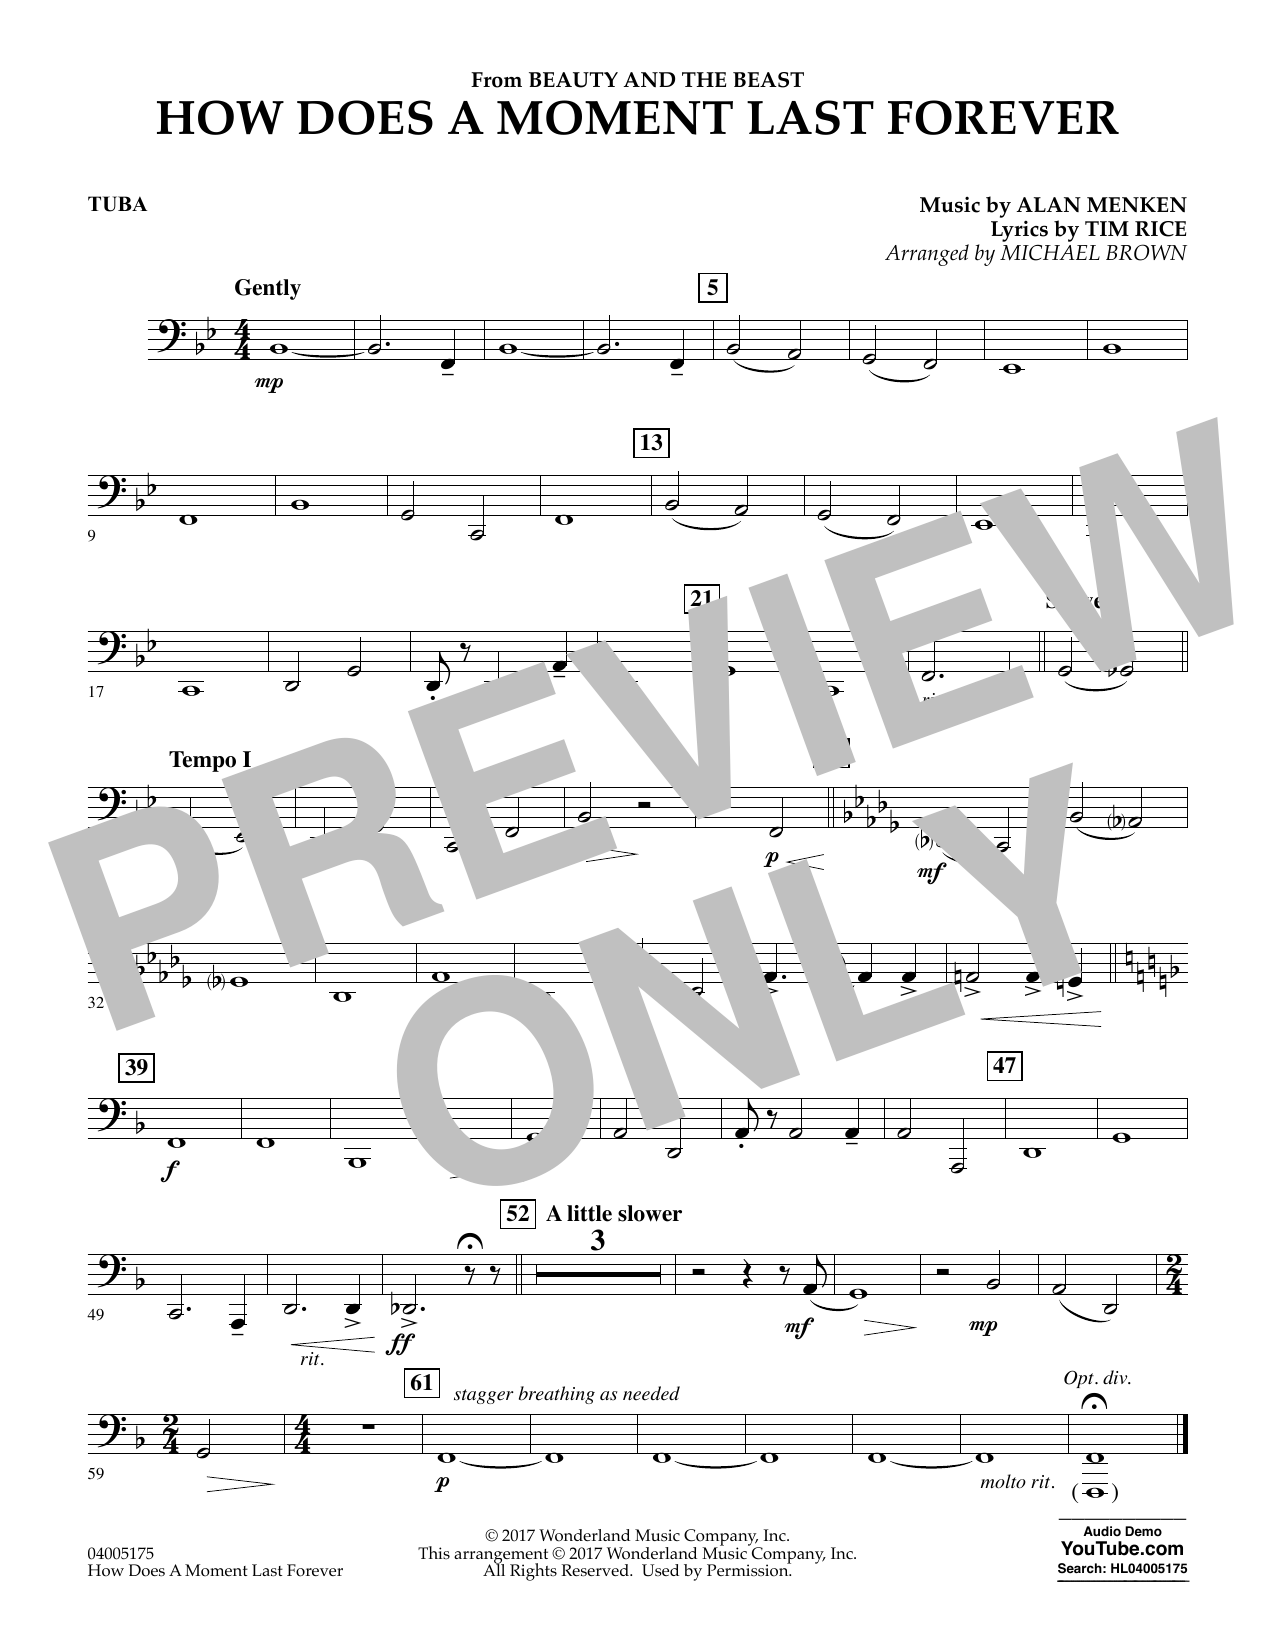 Michael Brown How Does a Moment Last Forever (from Beauty and the Beast) - Tuba sheet music notes and chords. Download Printable PDF.